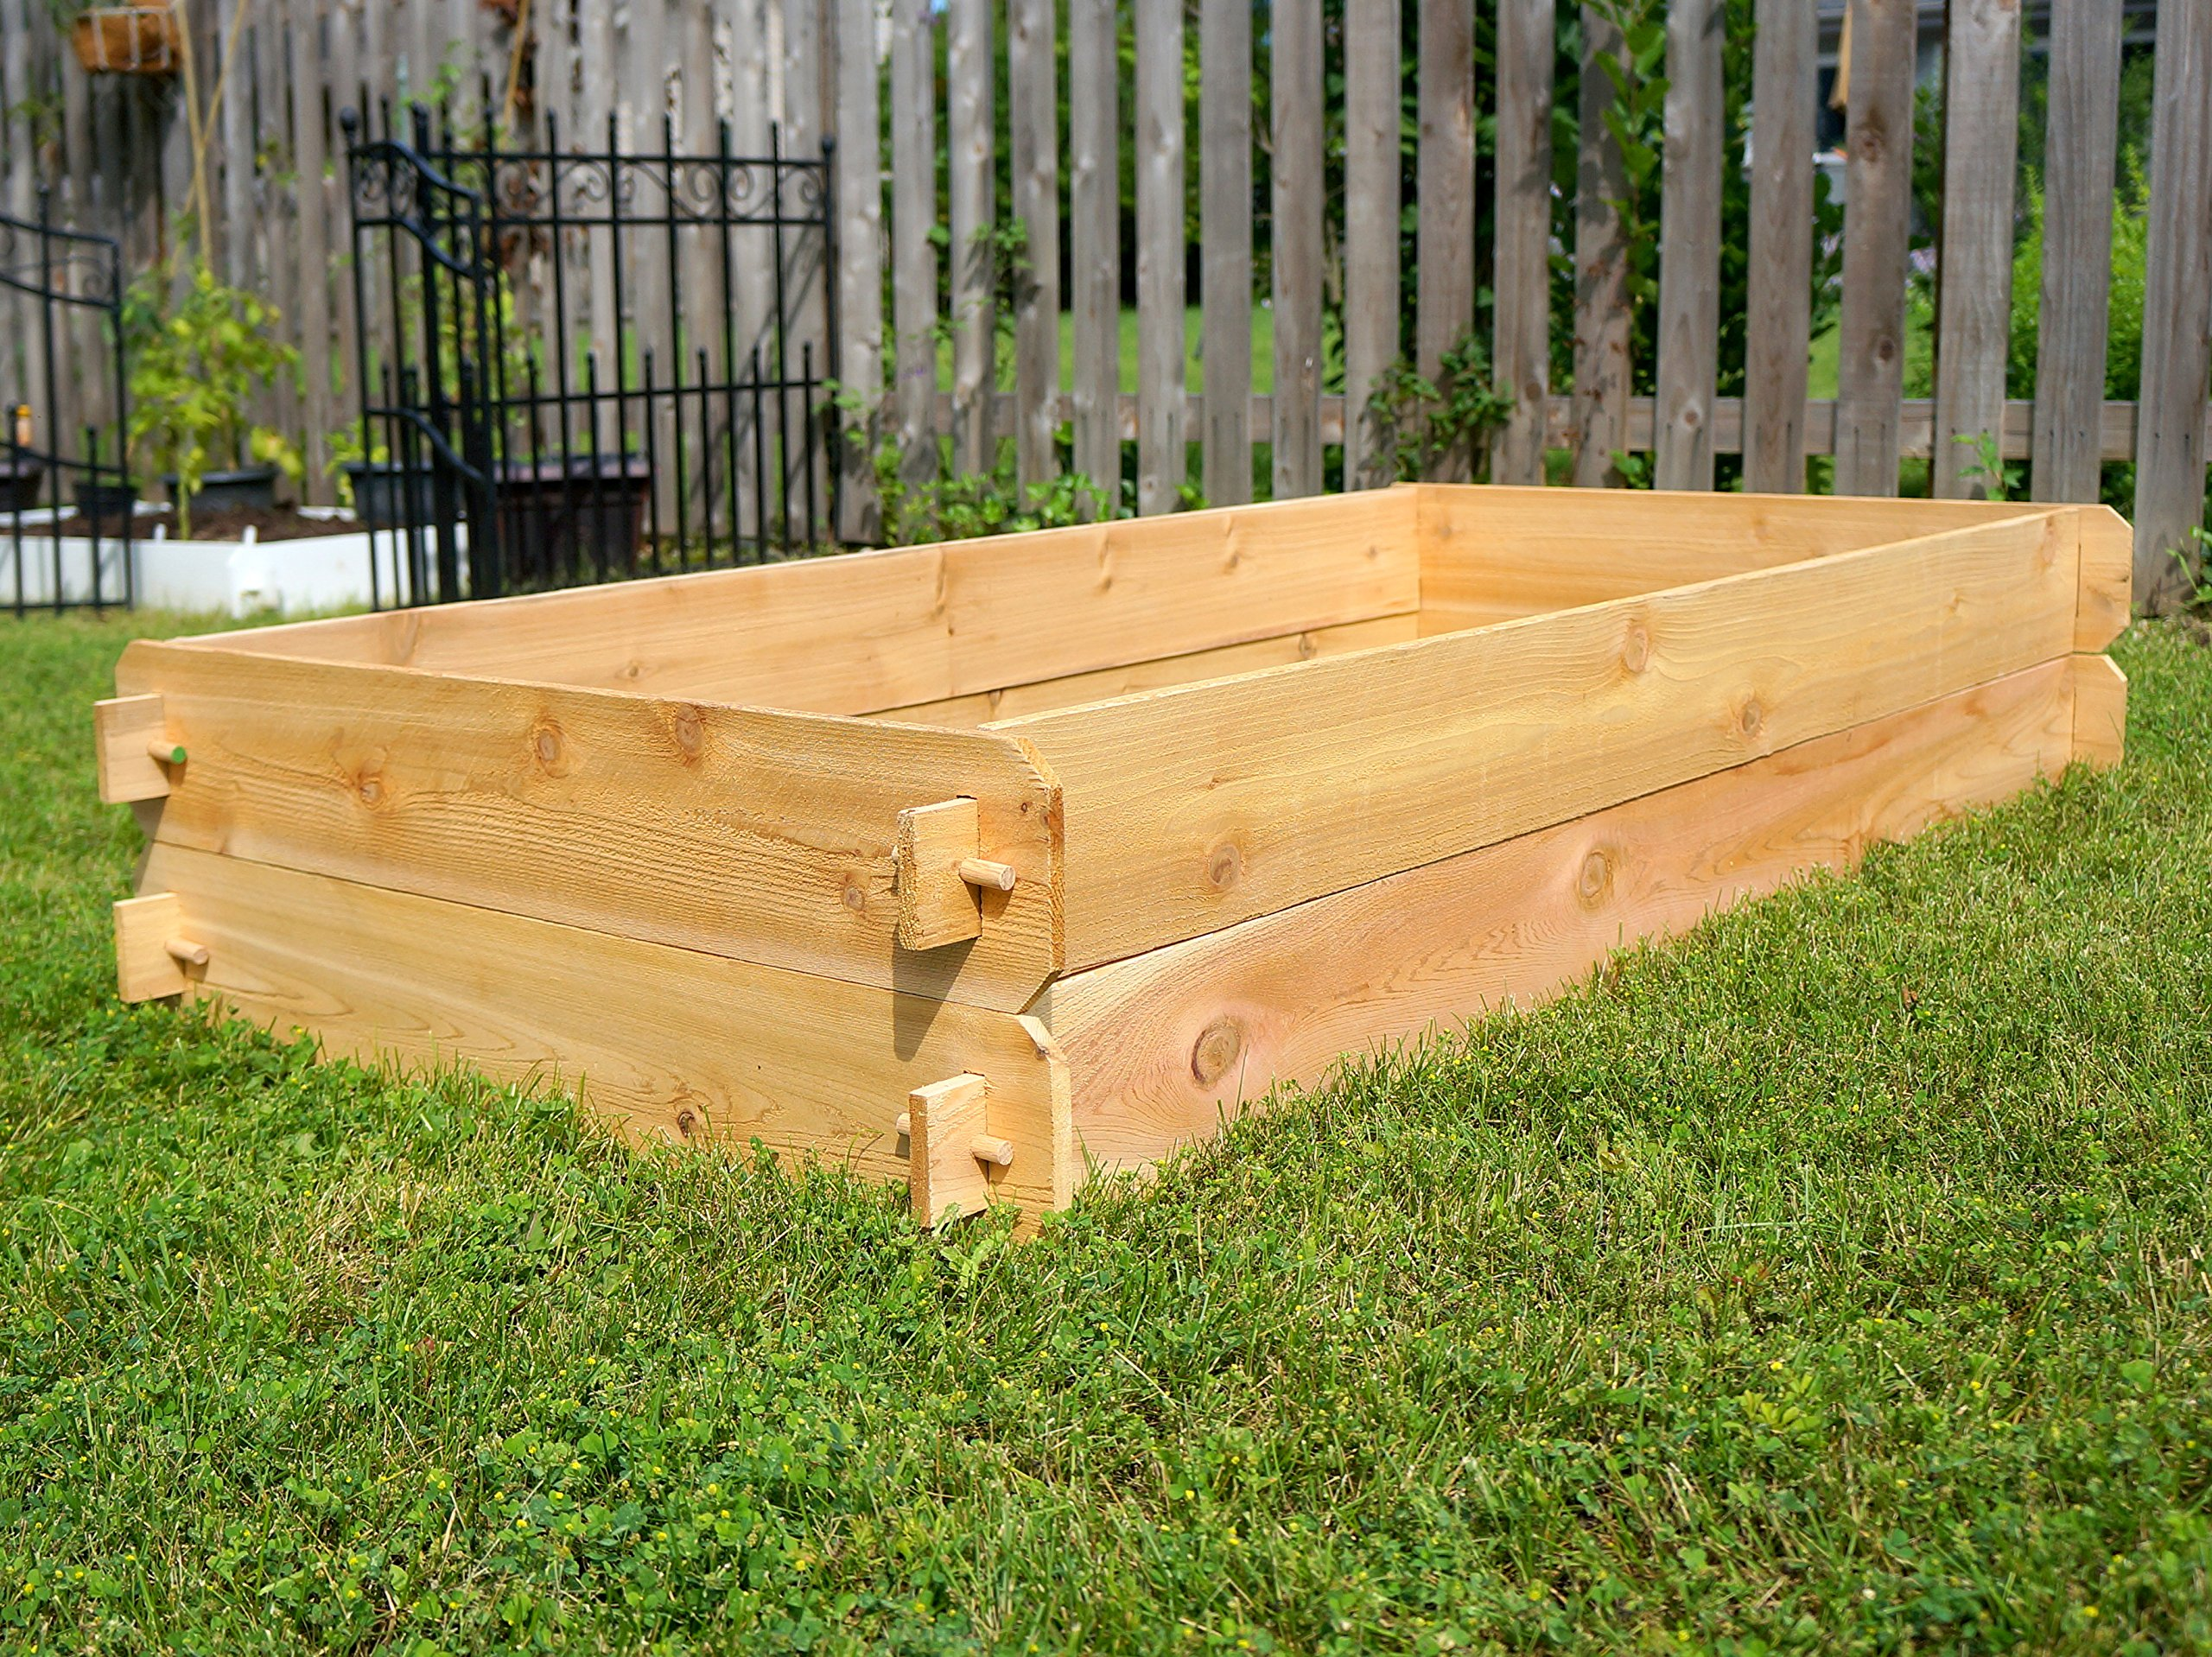 Timberlane Gardens Raised Bed Kit Double Deep, Western Red Cedar Mortise Tenon Joinery, 3' W x 6' L 3 Raised garden bed kit proudly made in homer glen, Illinois USA Constructed of select western red cedar Handcrafted mortise & tenon joinery